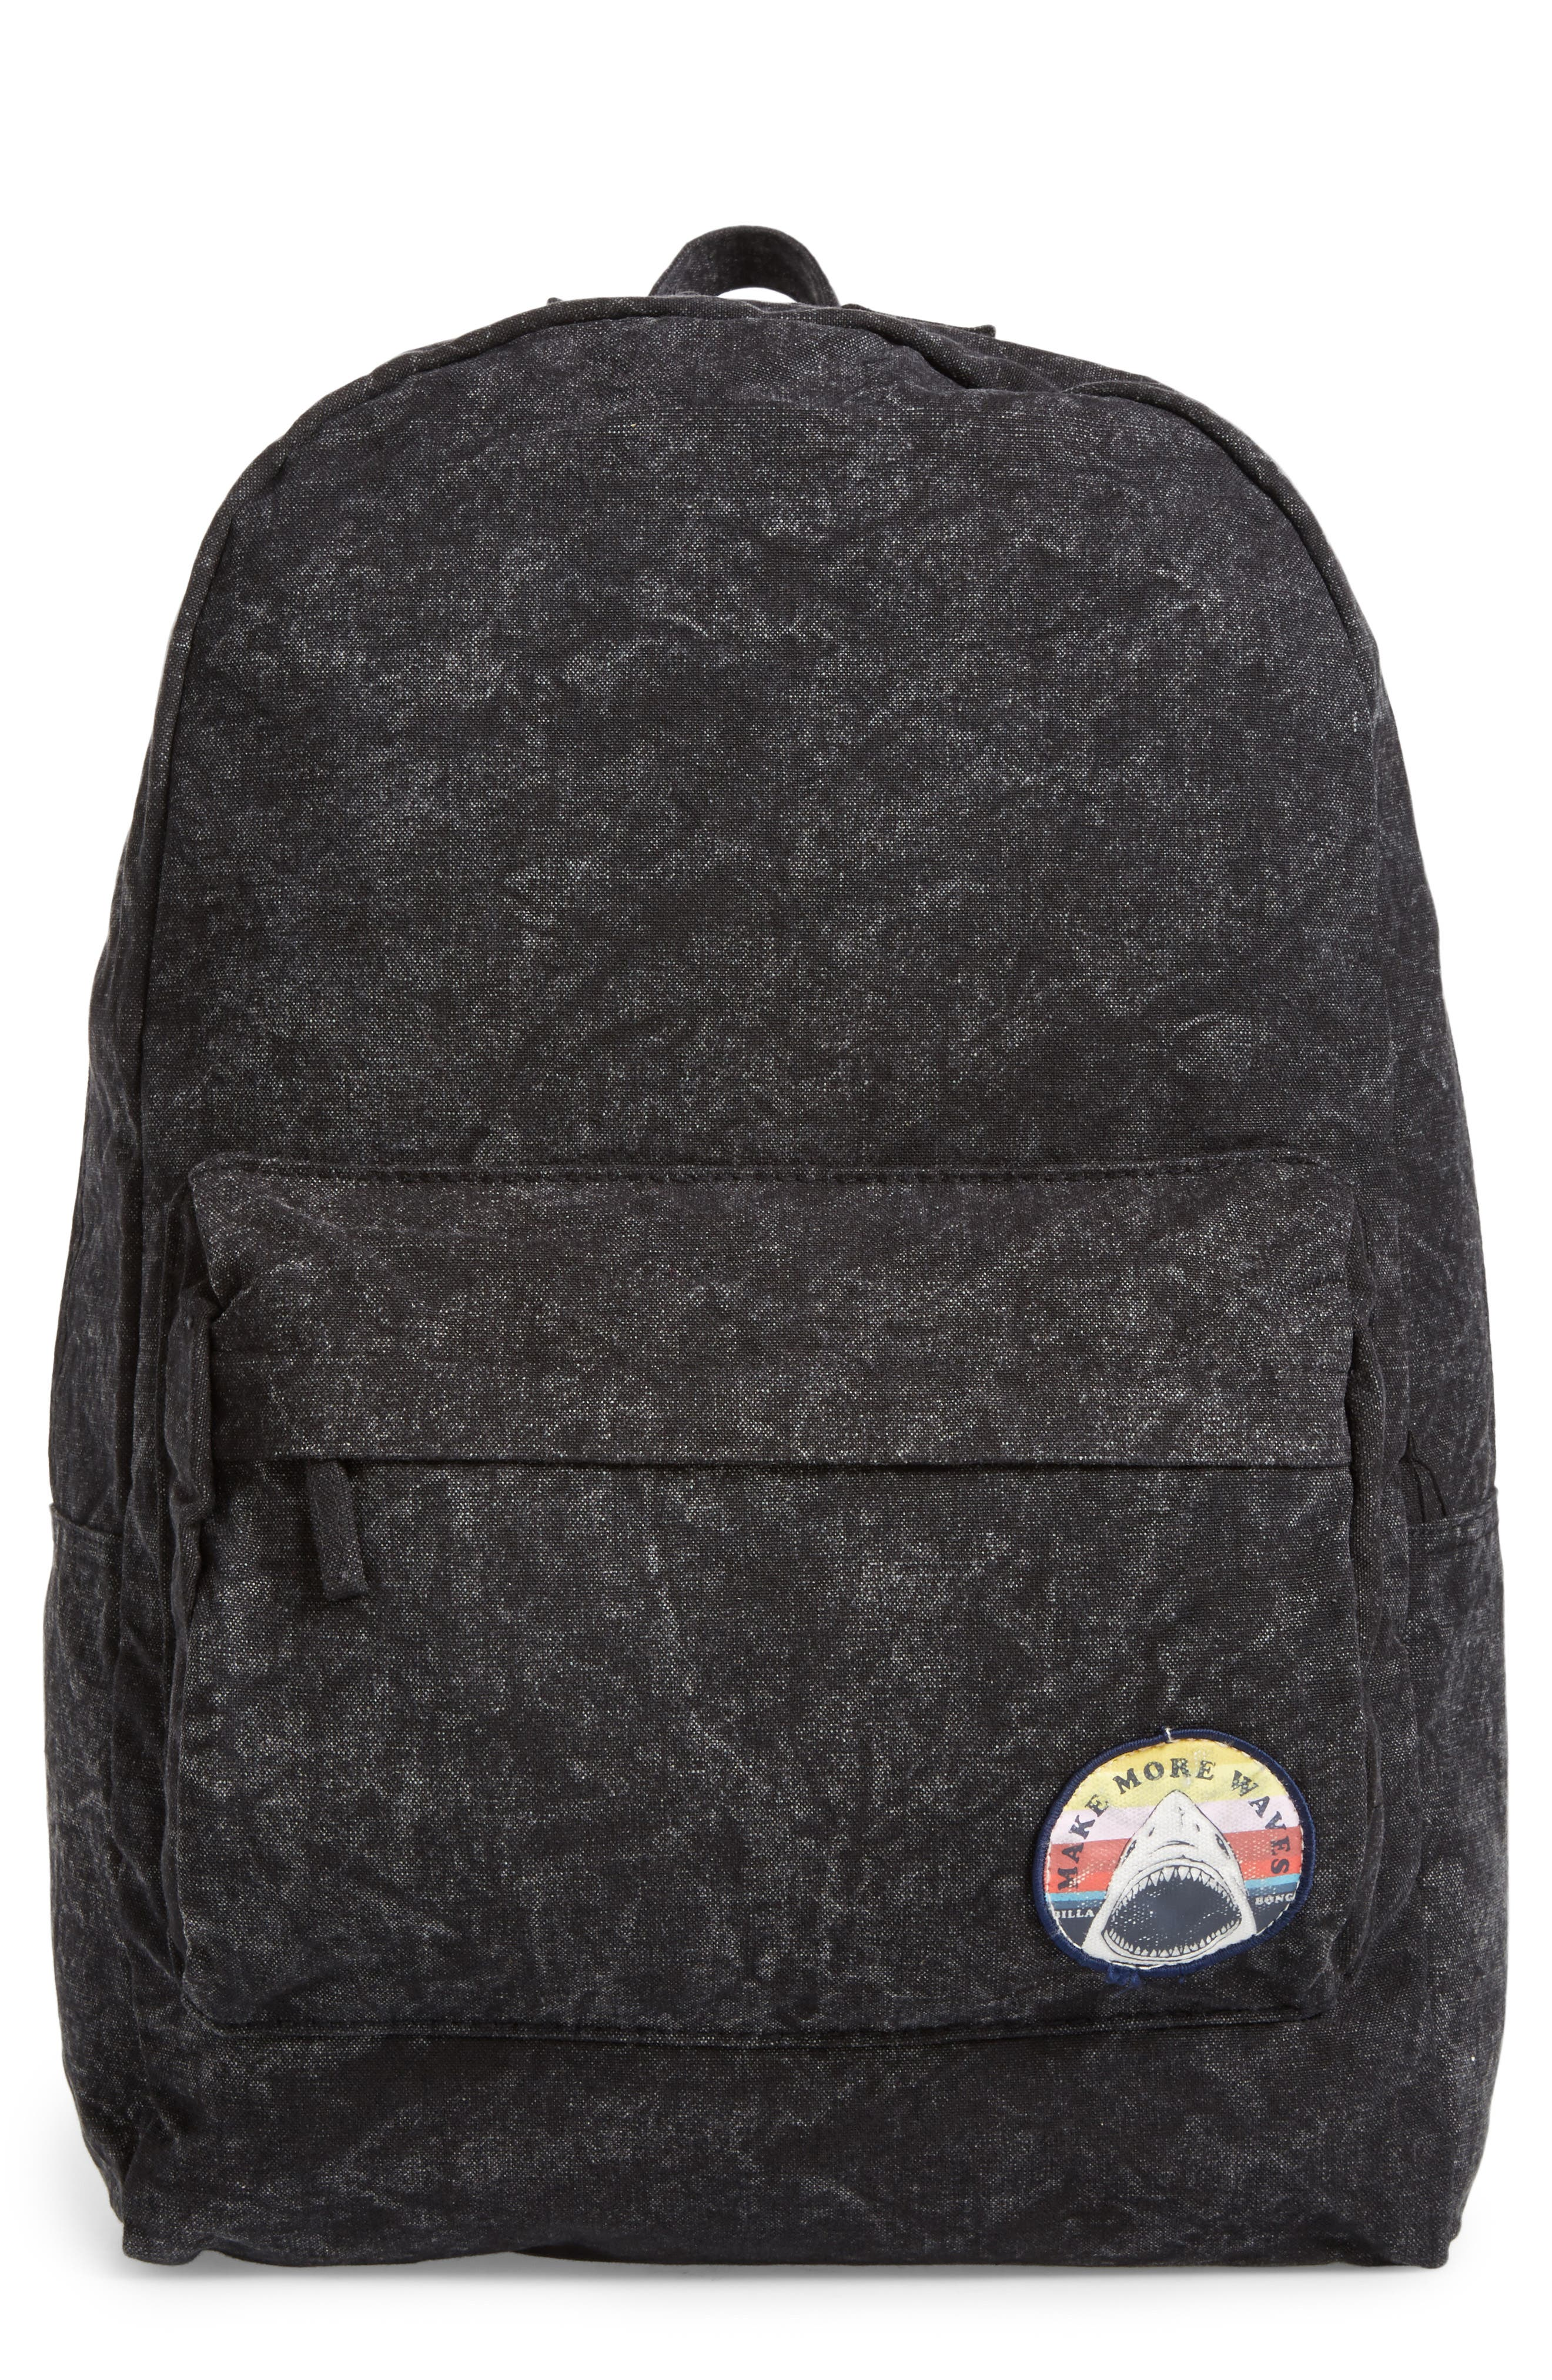 'Hand Over Love' Backpack,                             Main thumbnail 5, color,